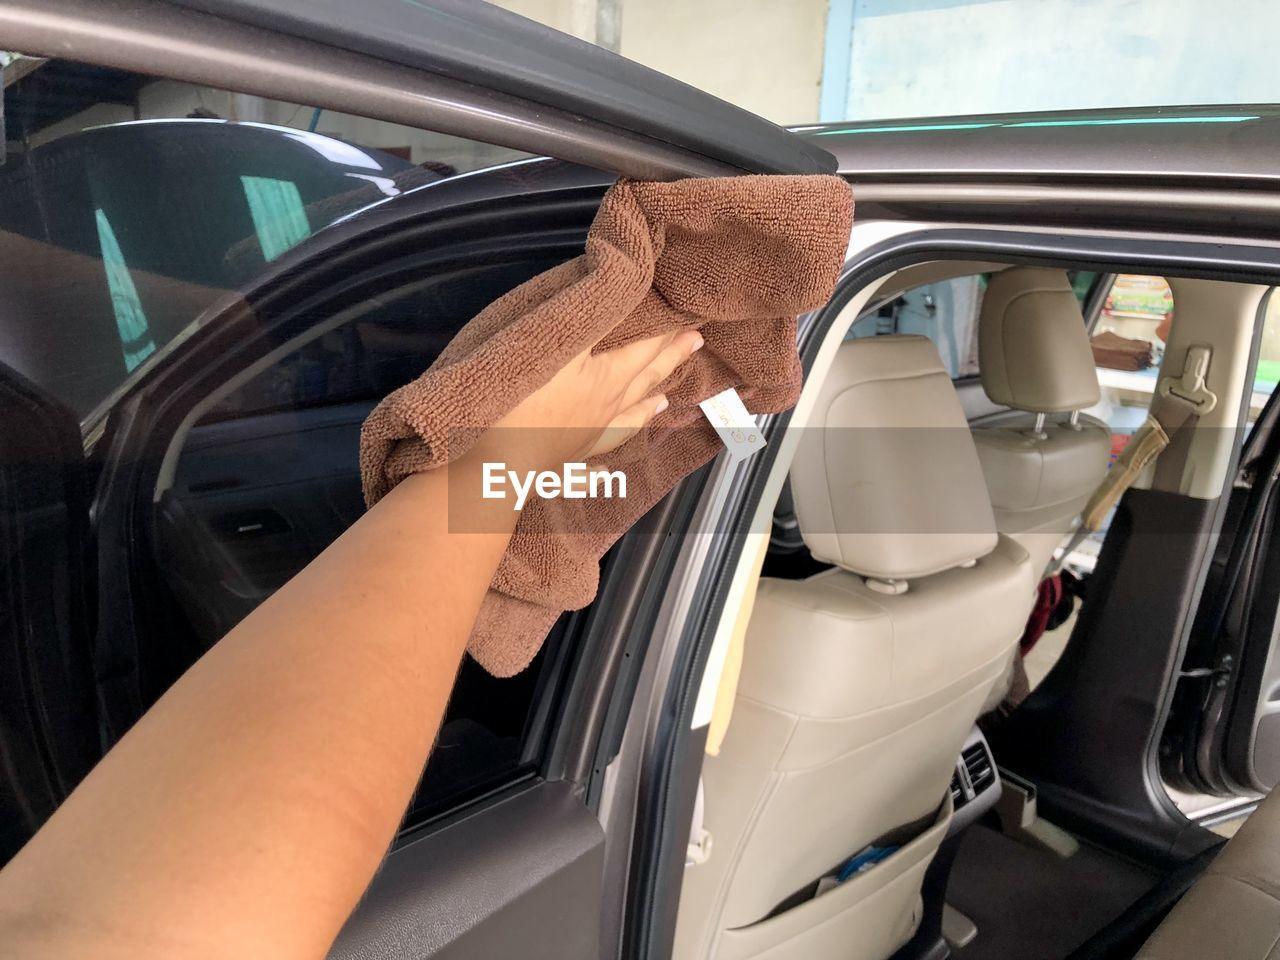 human hand, car, real people, mode of transportation, hand, human body part, motor vehicle, transportation, land vehicle, lifestyles, one person, holding, vehicle interior, cleaning, glass - material, women, day, unrecognizable person, adult, finger